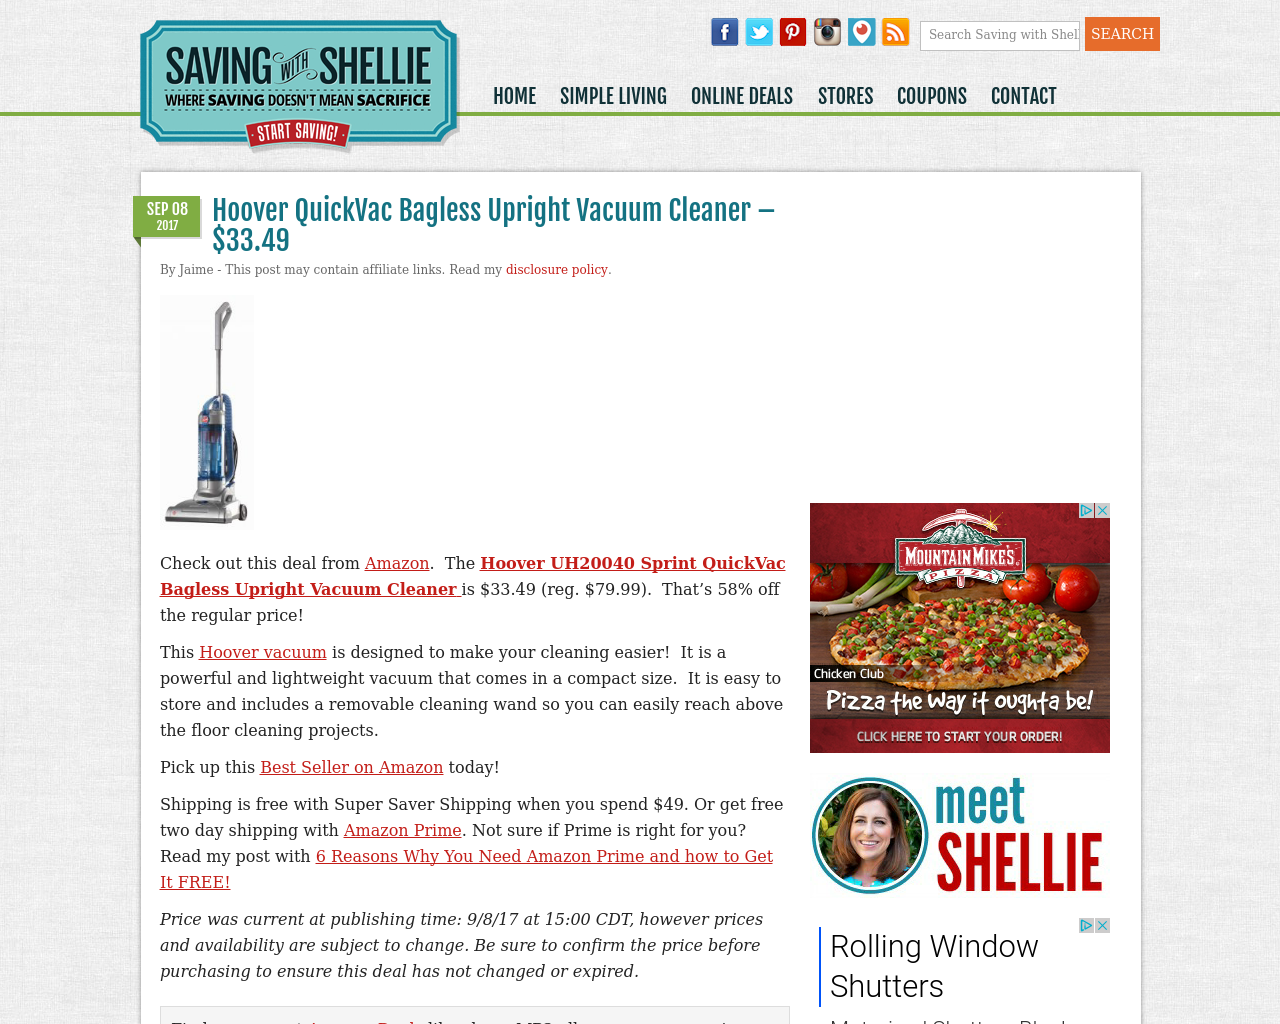 Saving-With-Shellie-Advertising-Reviews-Pricing